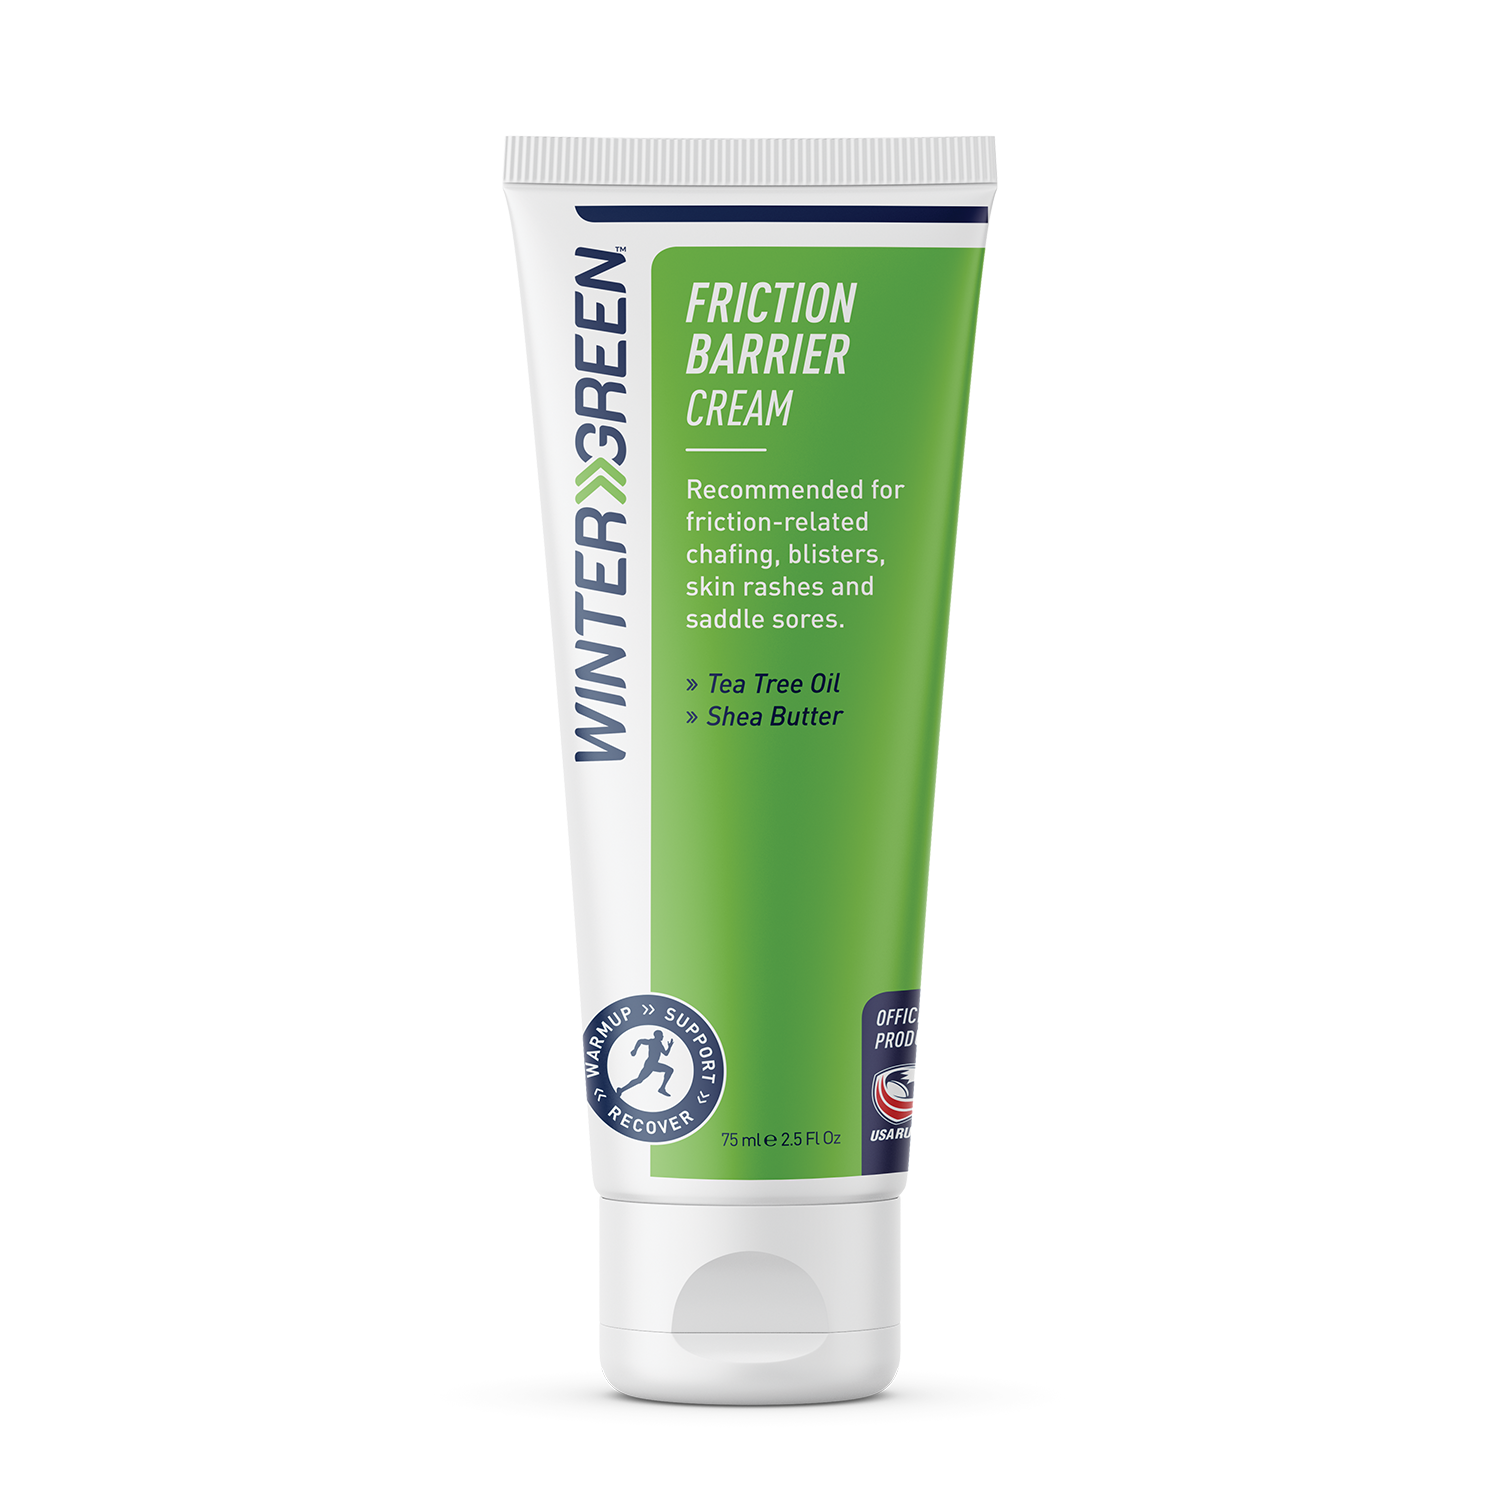 Wintergreen Friction Barrier Cream tube